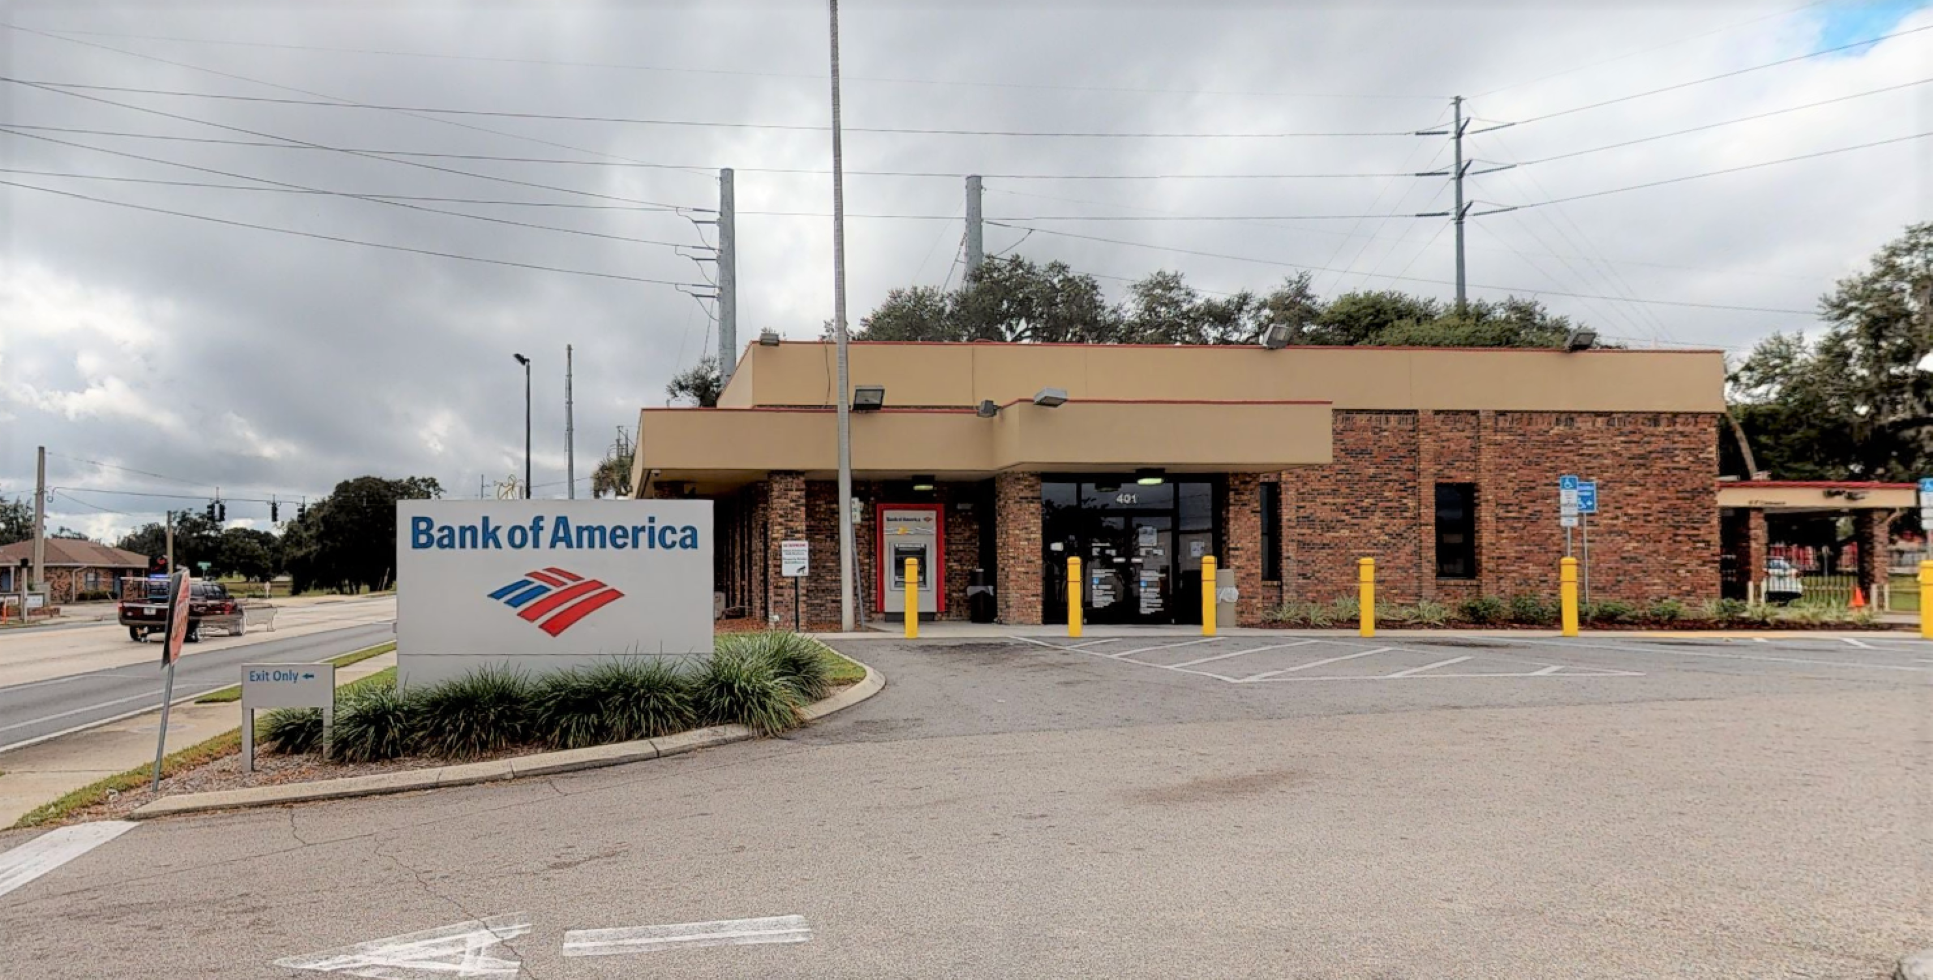 Bank of America financial center with drive-thru ATM | 401 N 14th St, Leesburg, FL 34748